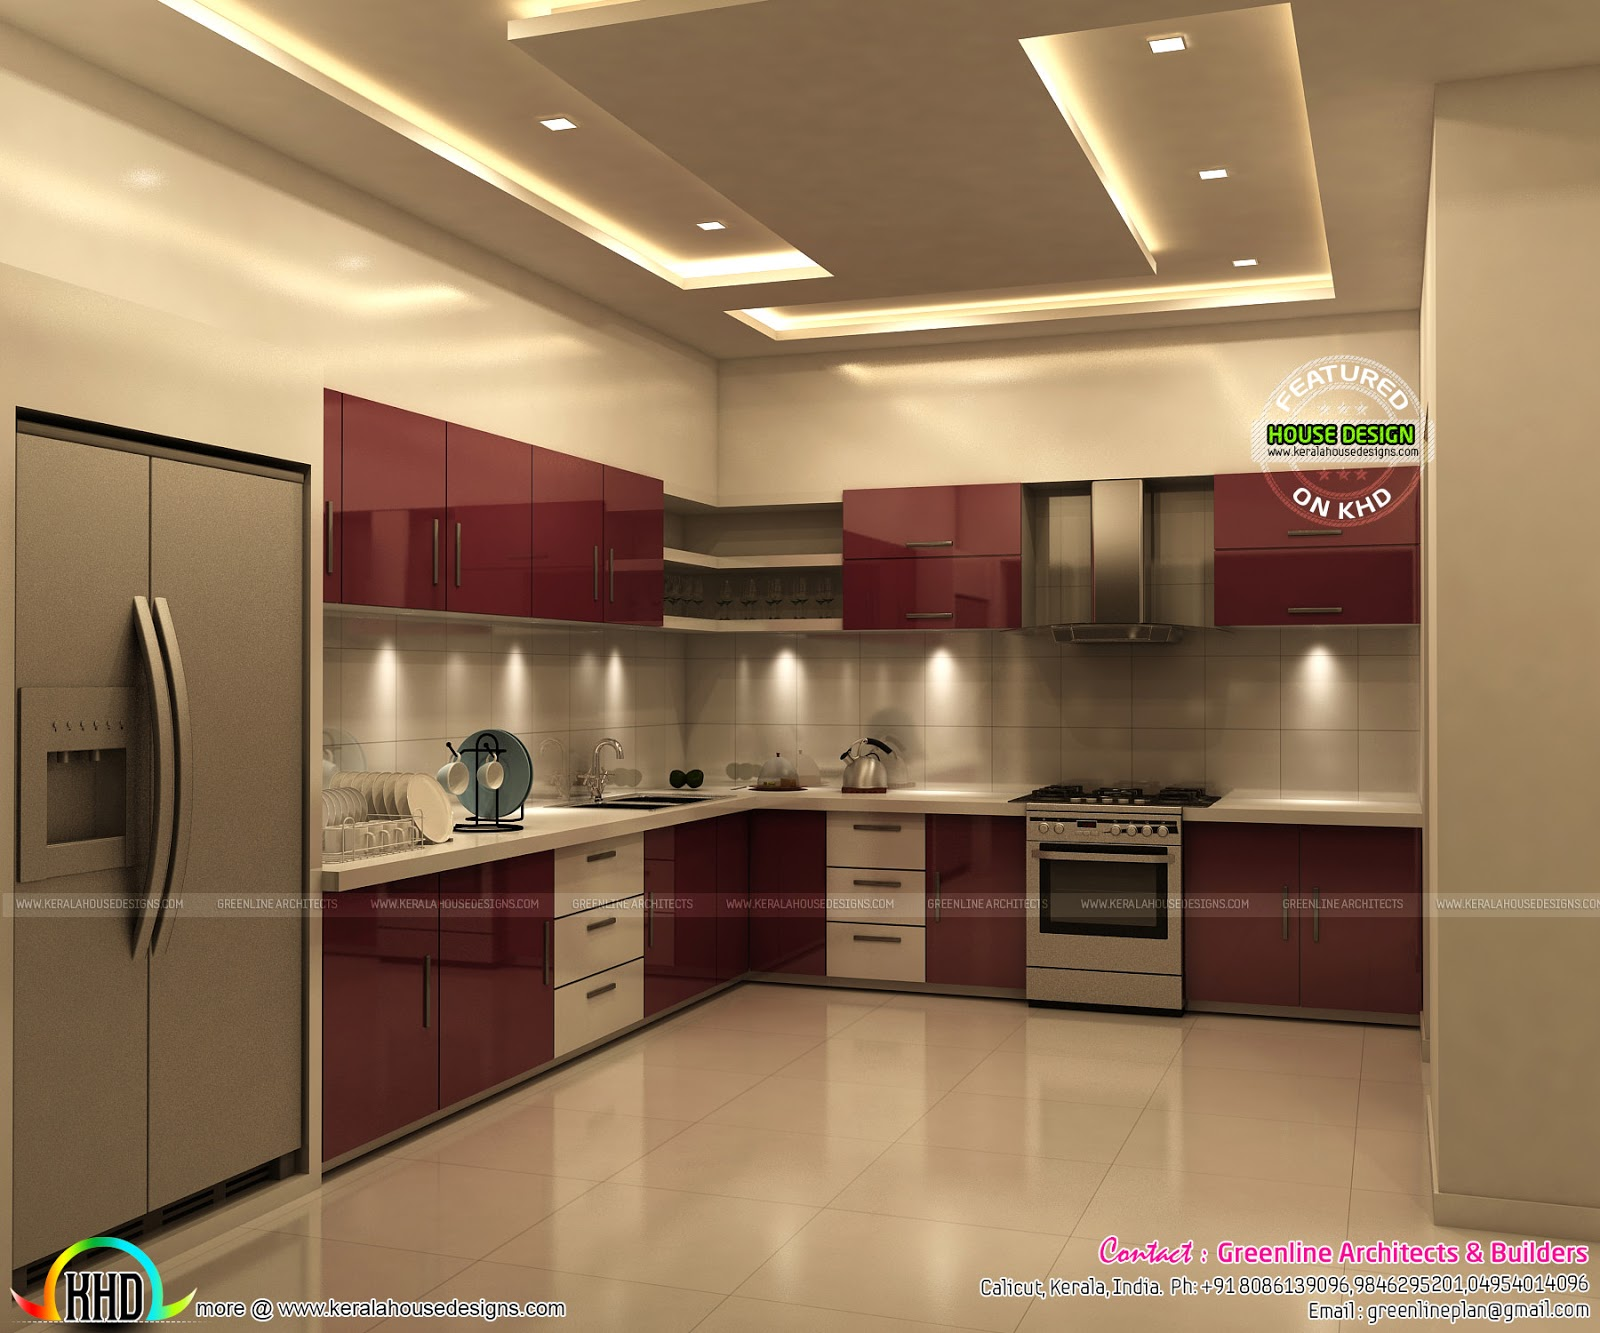 Superb kitchen and bedroom interiors kerala home design for Interiors by design